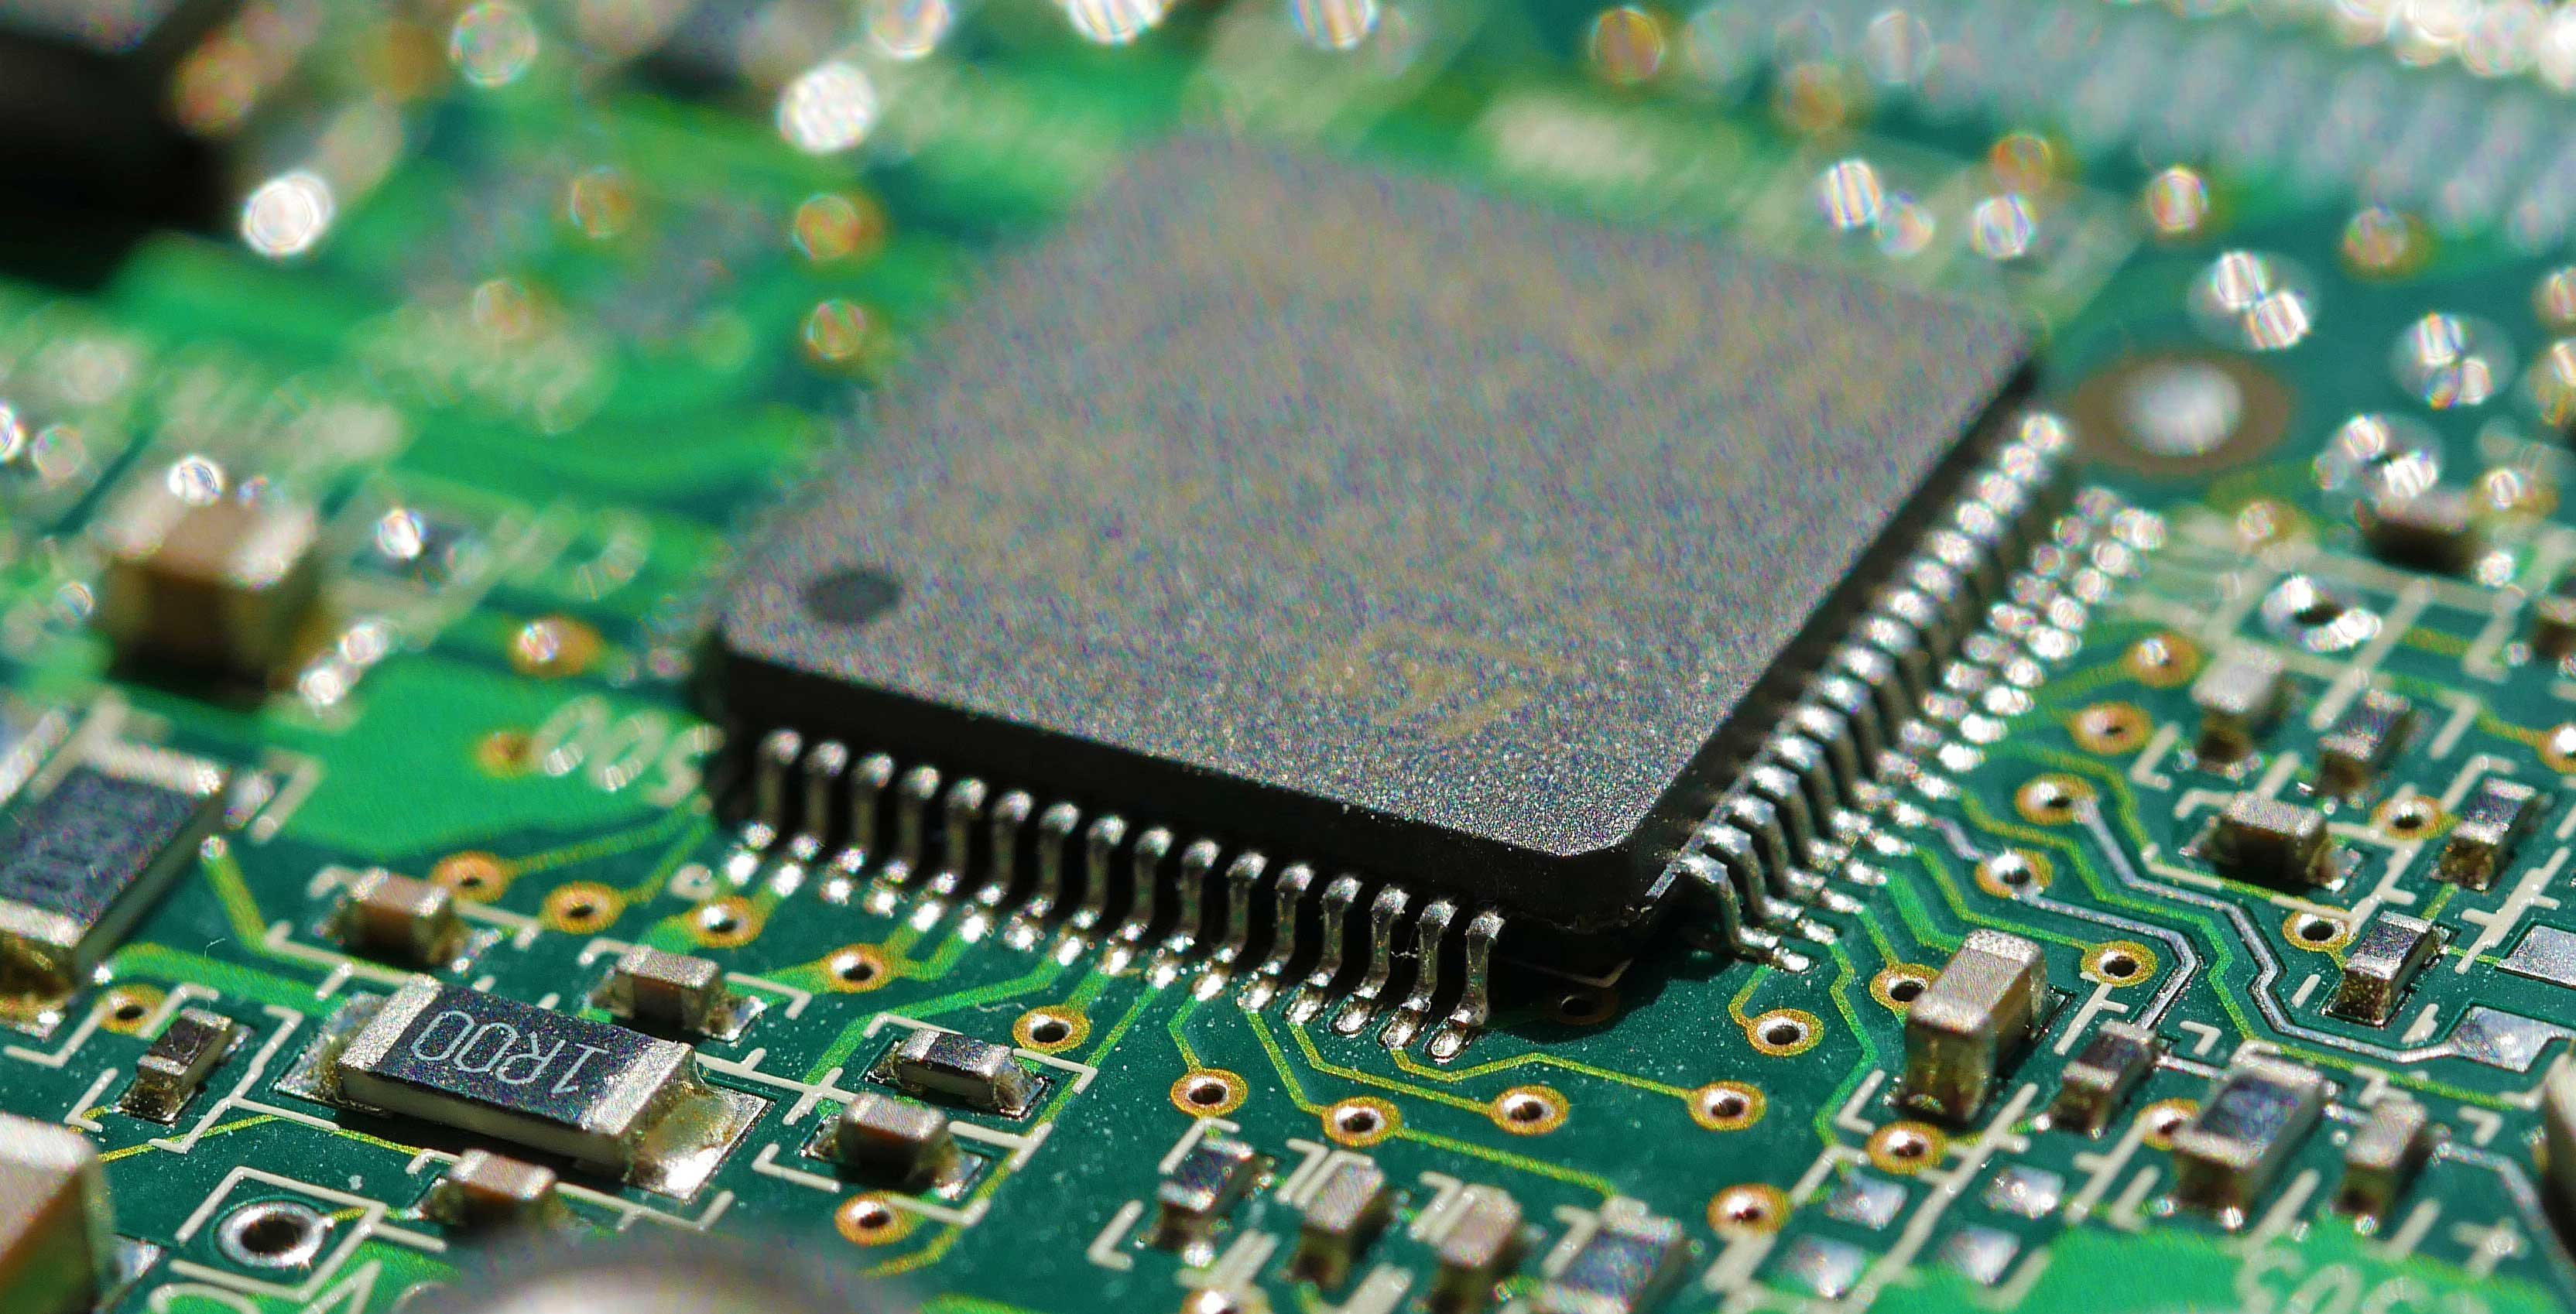 An image of a microchip